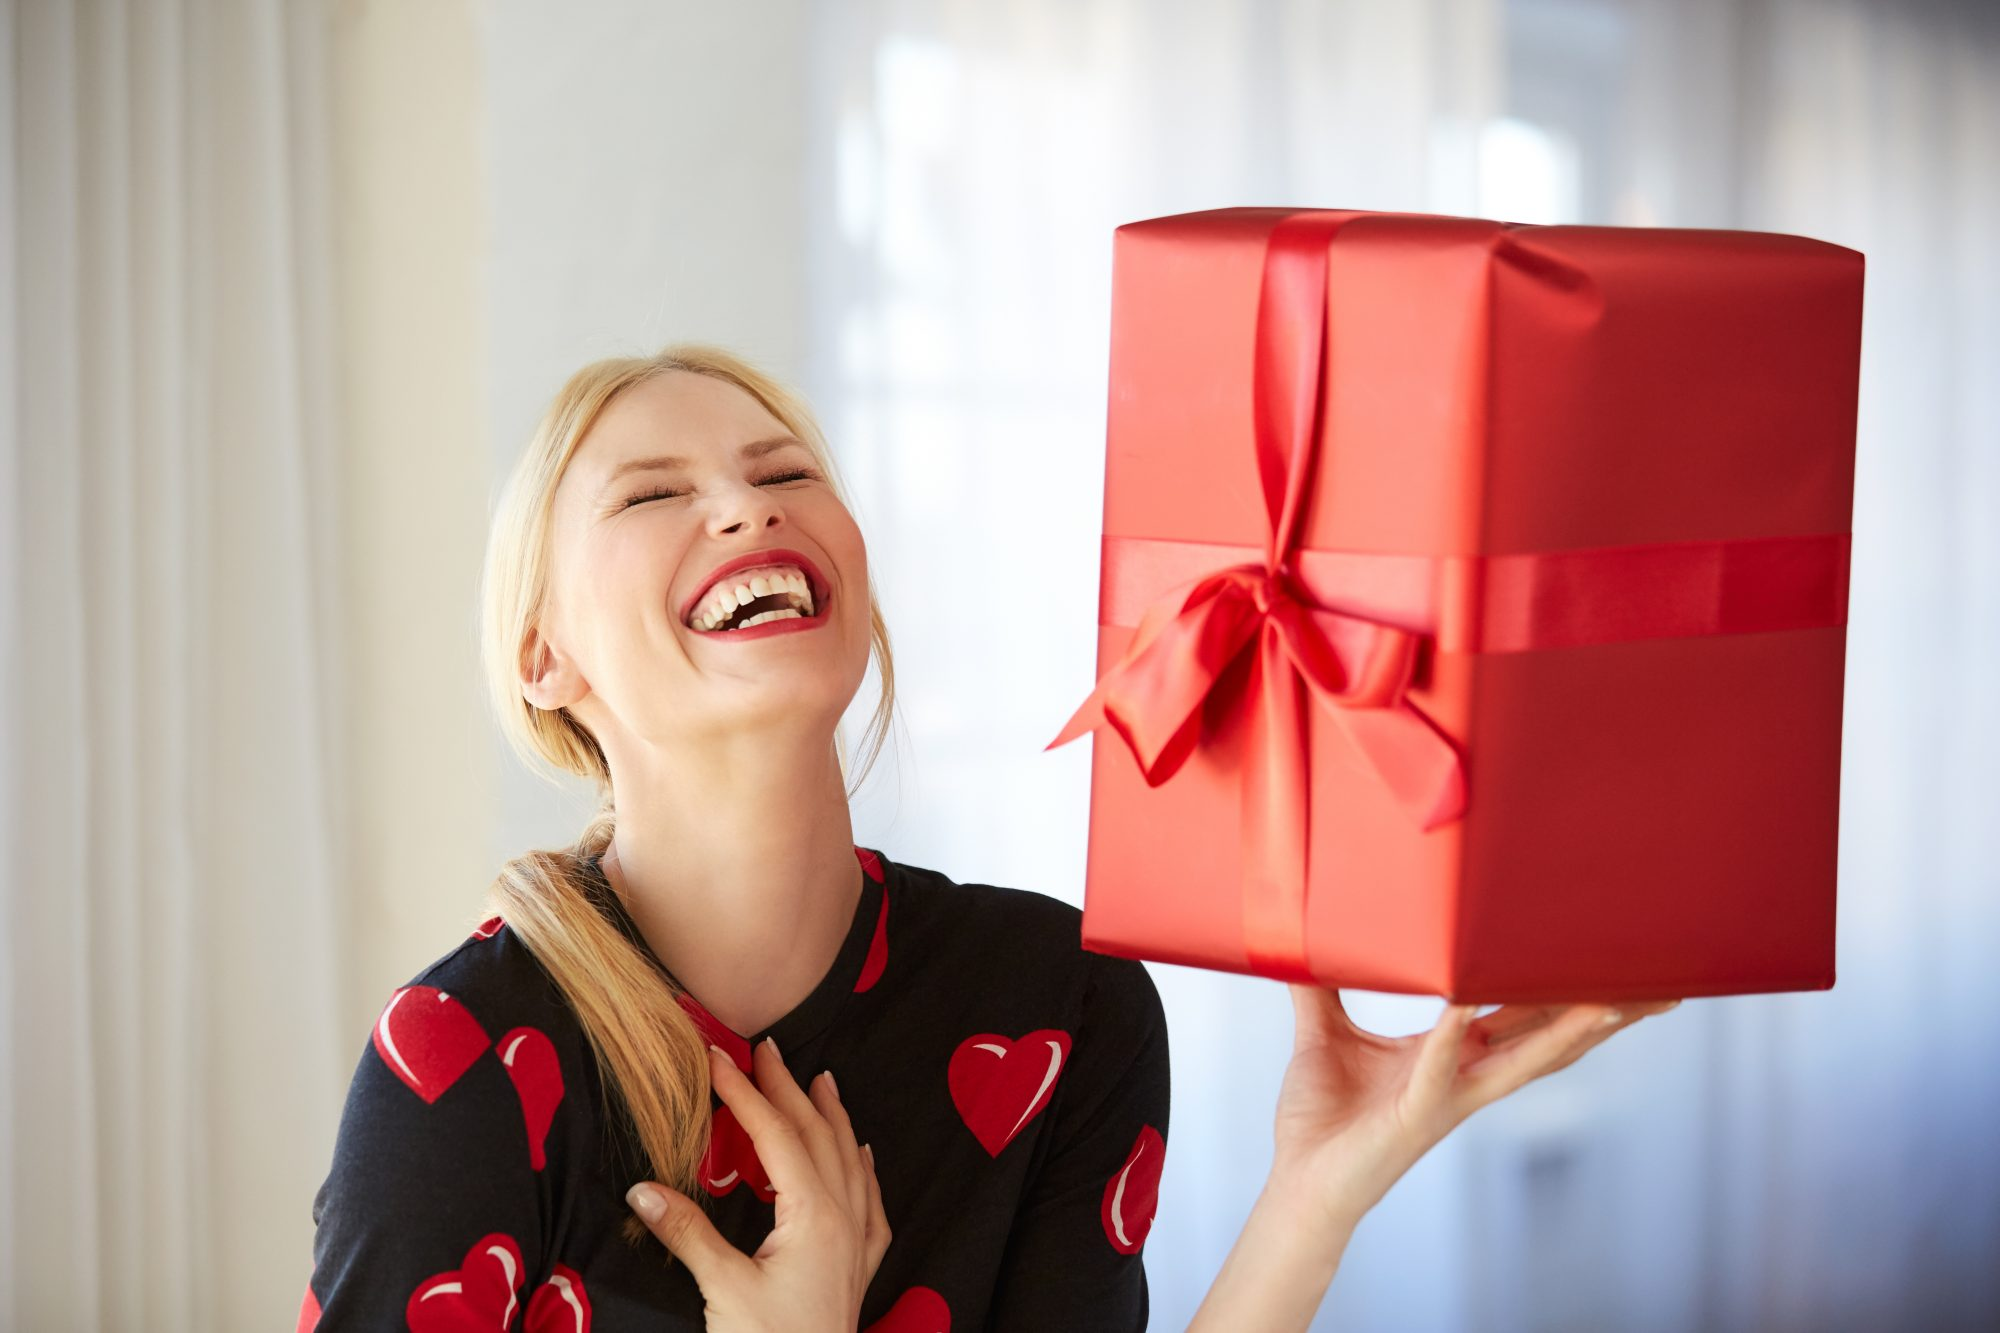 Woman with Wrapped Gift